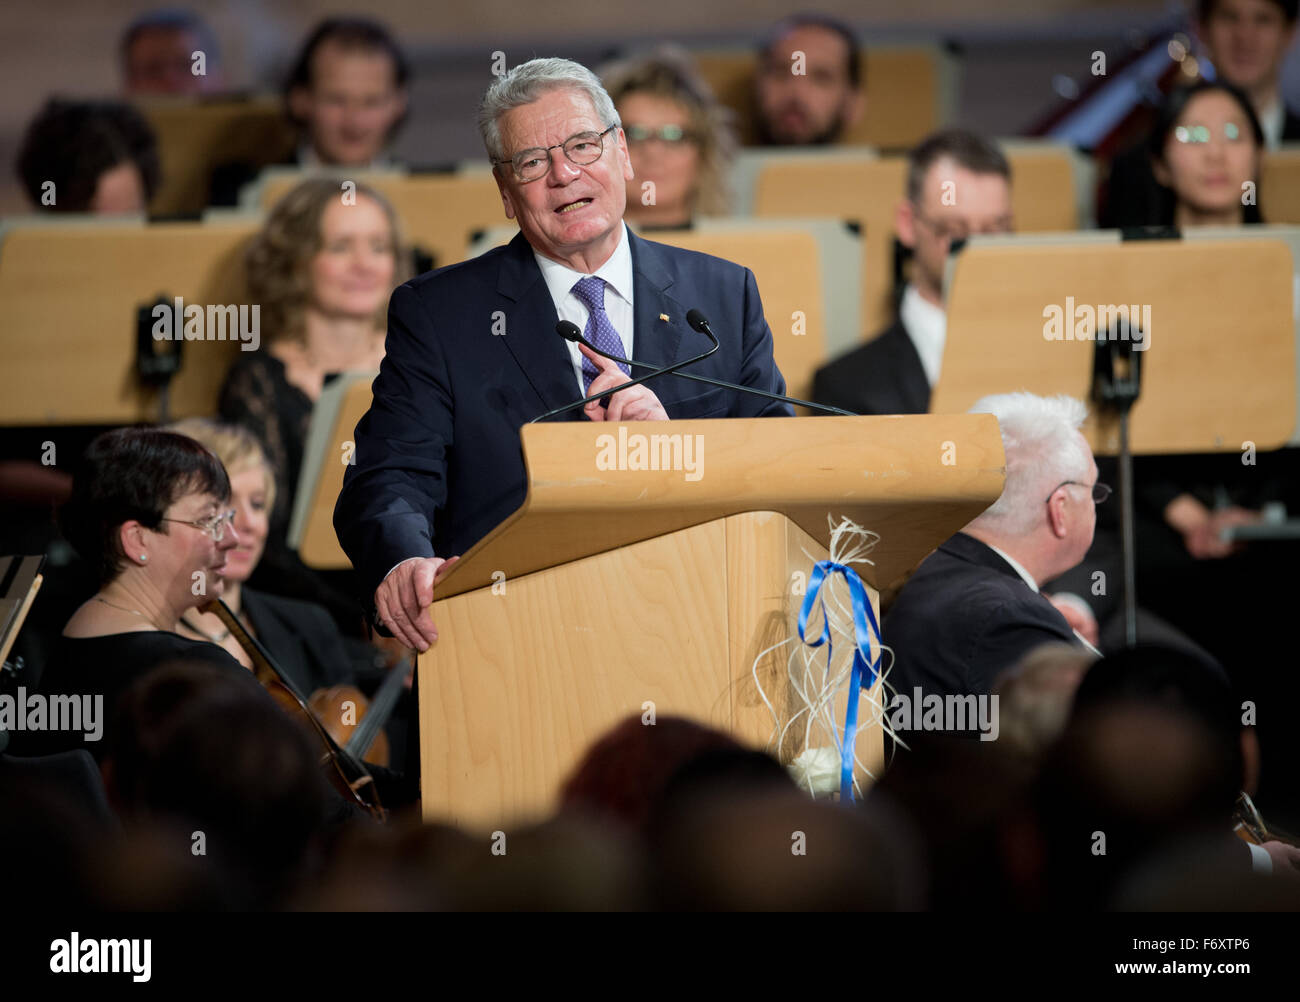 Freiberg, Germany. 21st Nov, 2015. German President Joachim Gauck delivers a speech during a ceremonial act marking - Stock Image